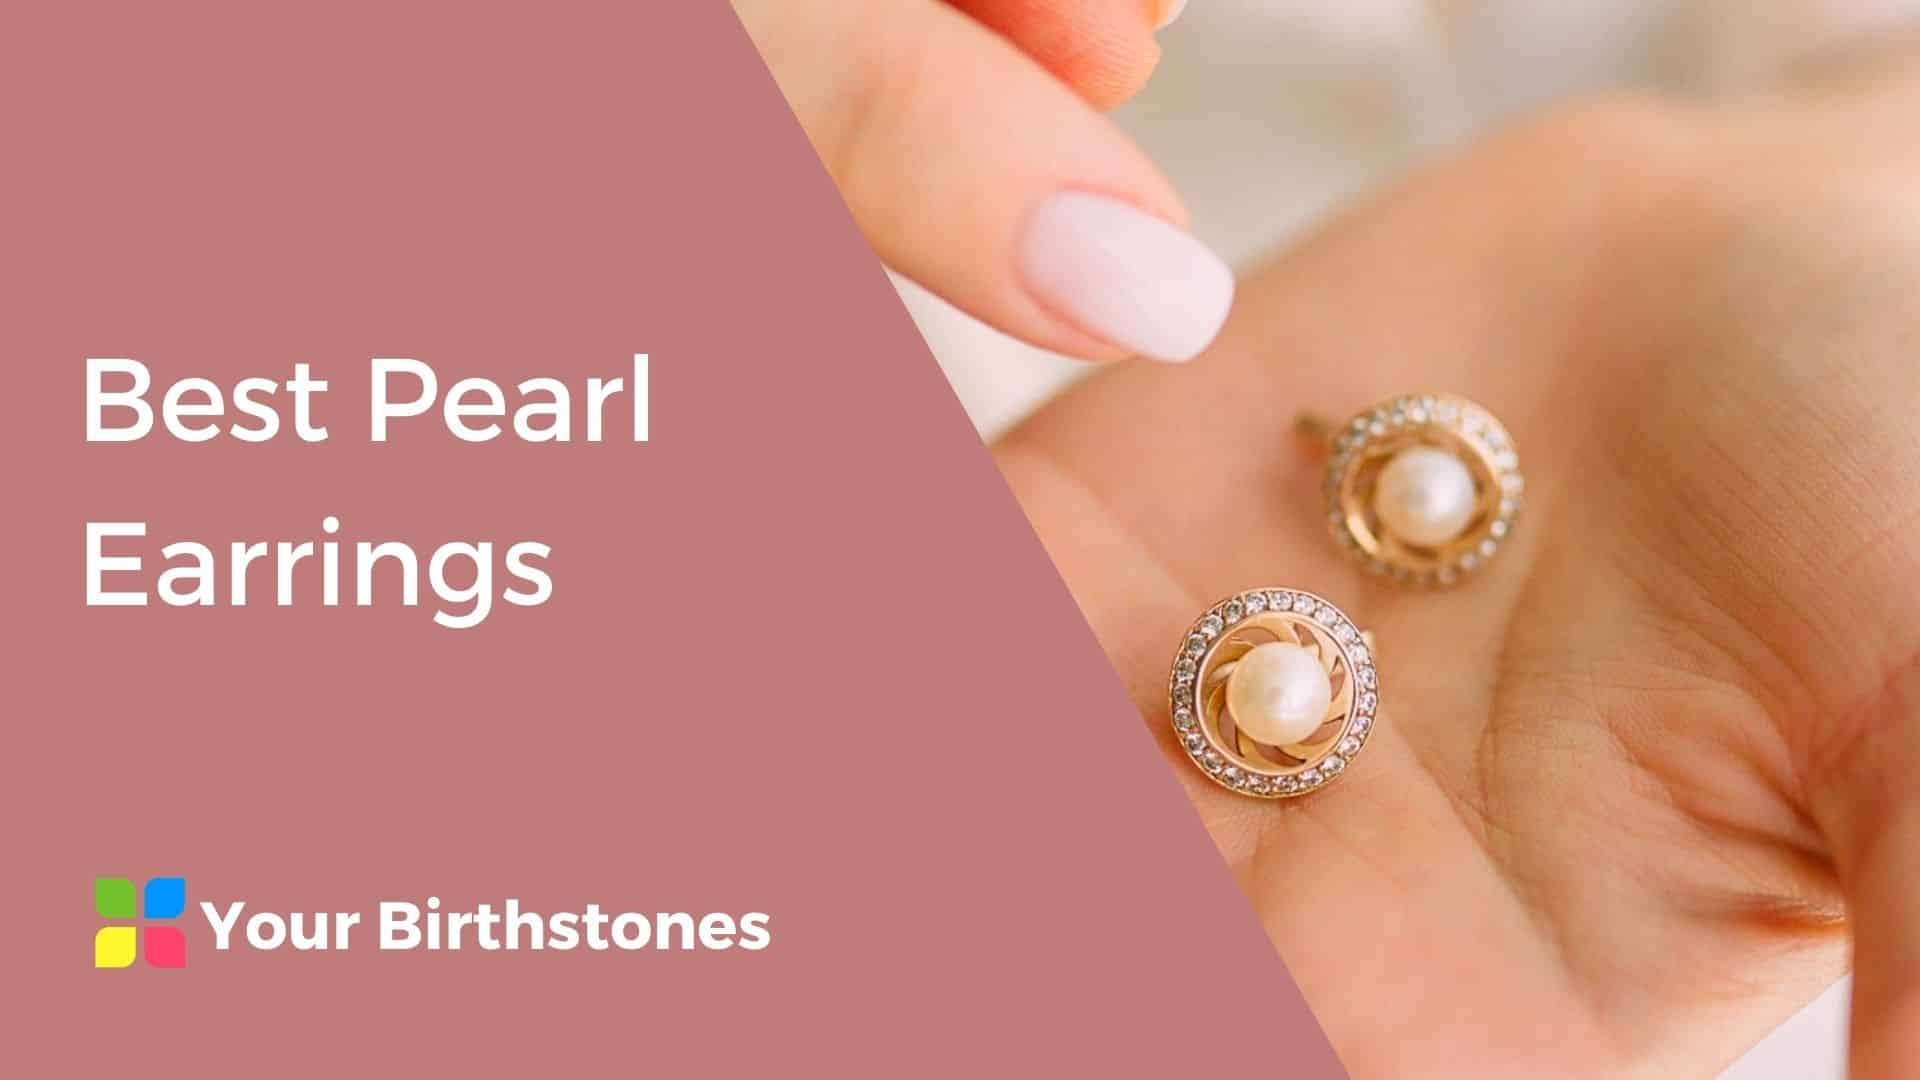 Best Pearl Earrings